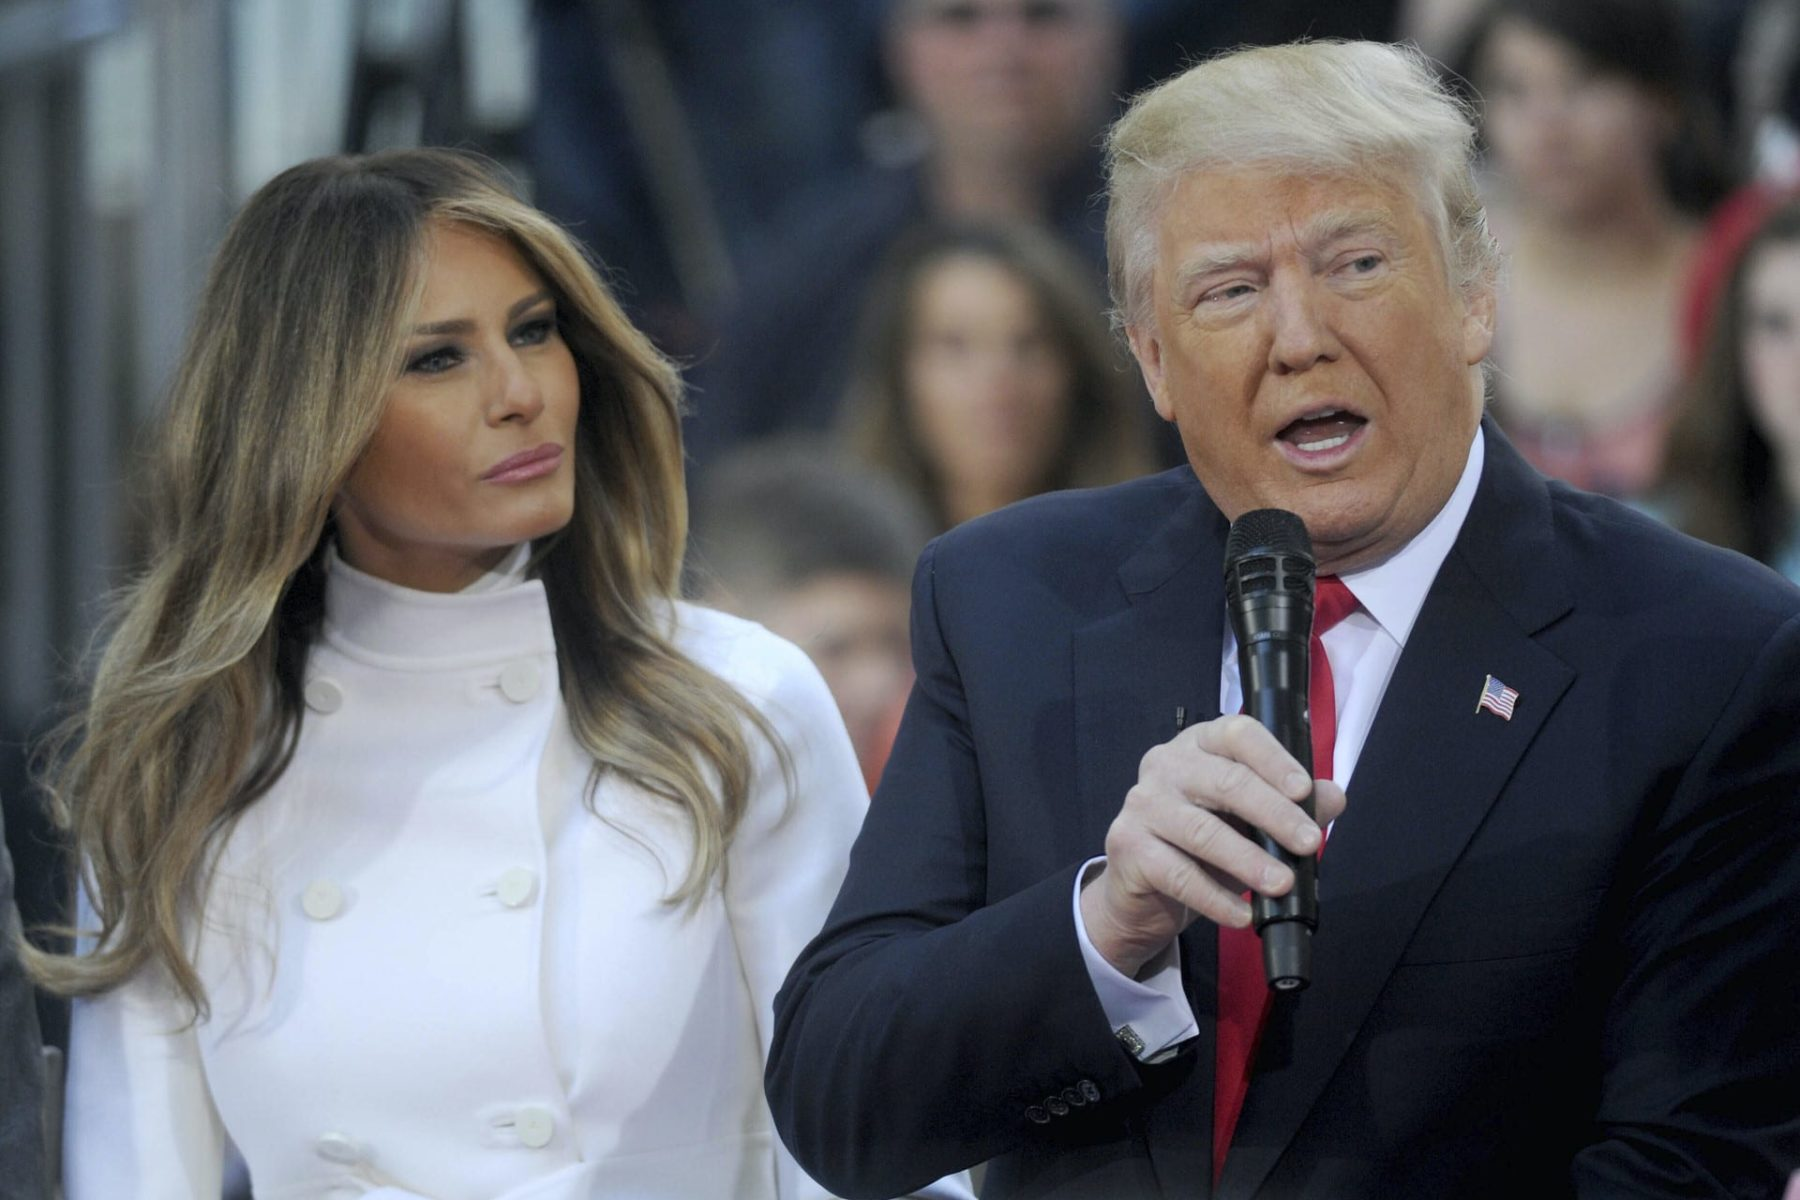 Melania and Donald Trump at a town hall.